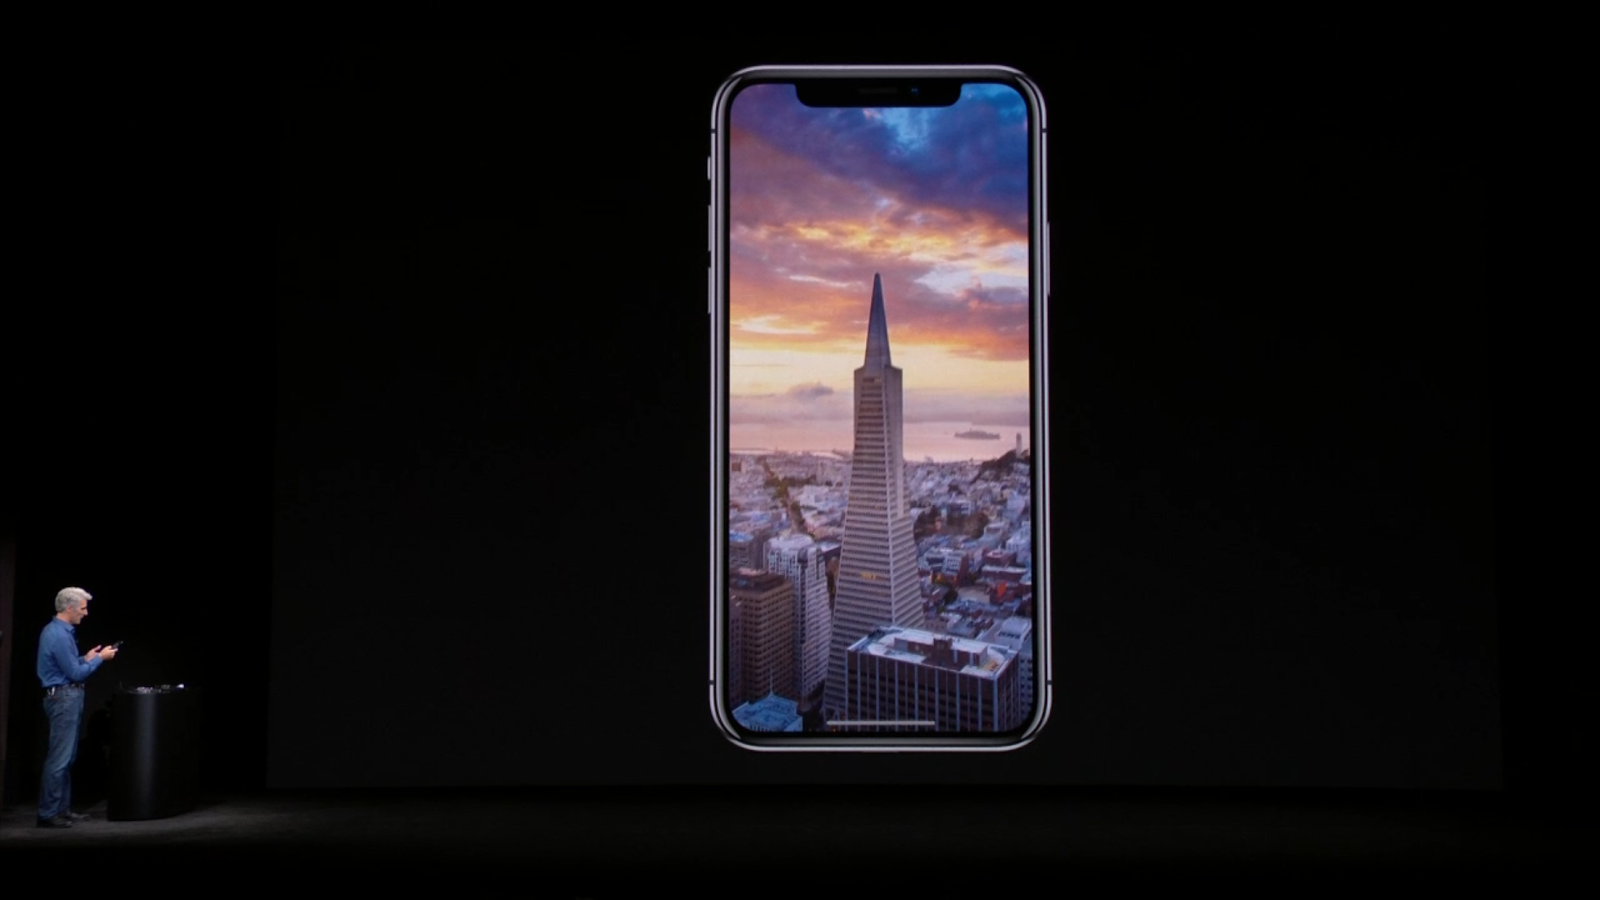 IMG_4134 Check out the Stunning iPhone X (iPhone 10) images Apple